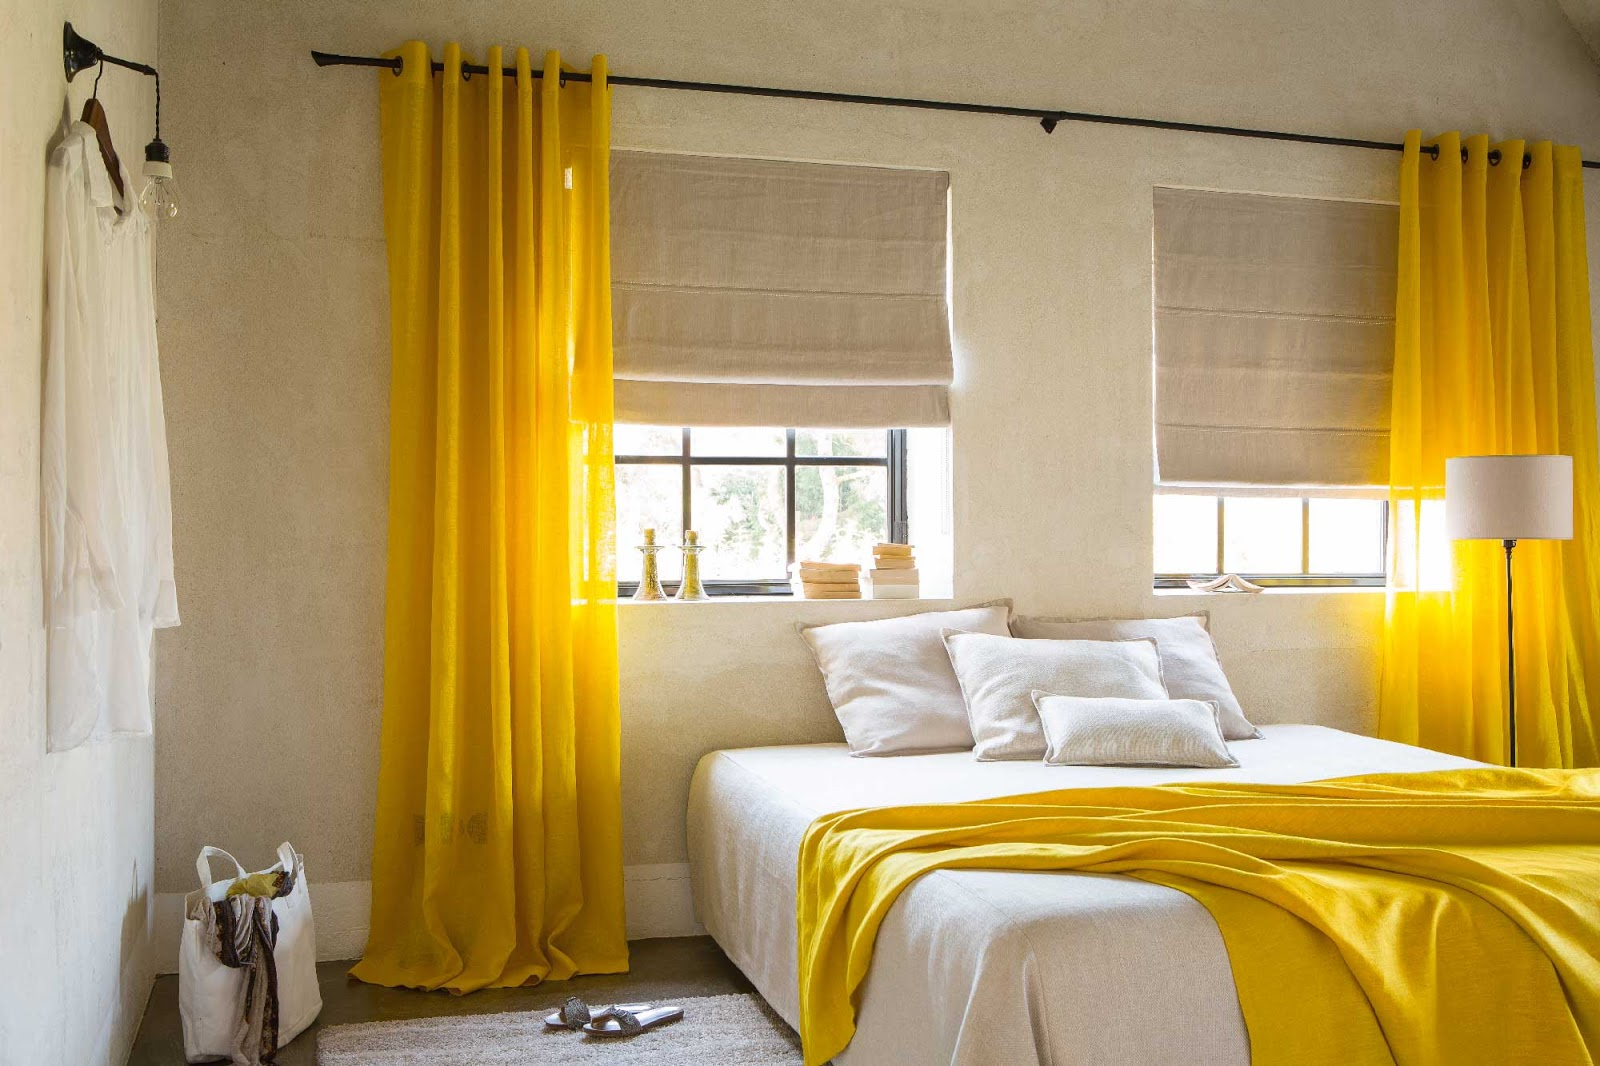 Bedroom Decor Yellow home decor design